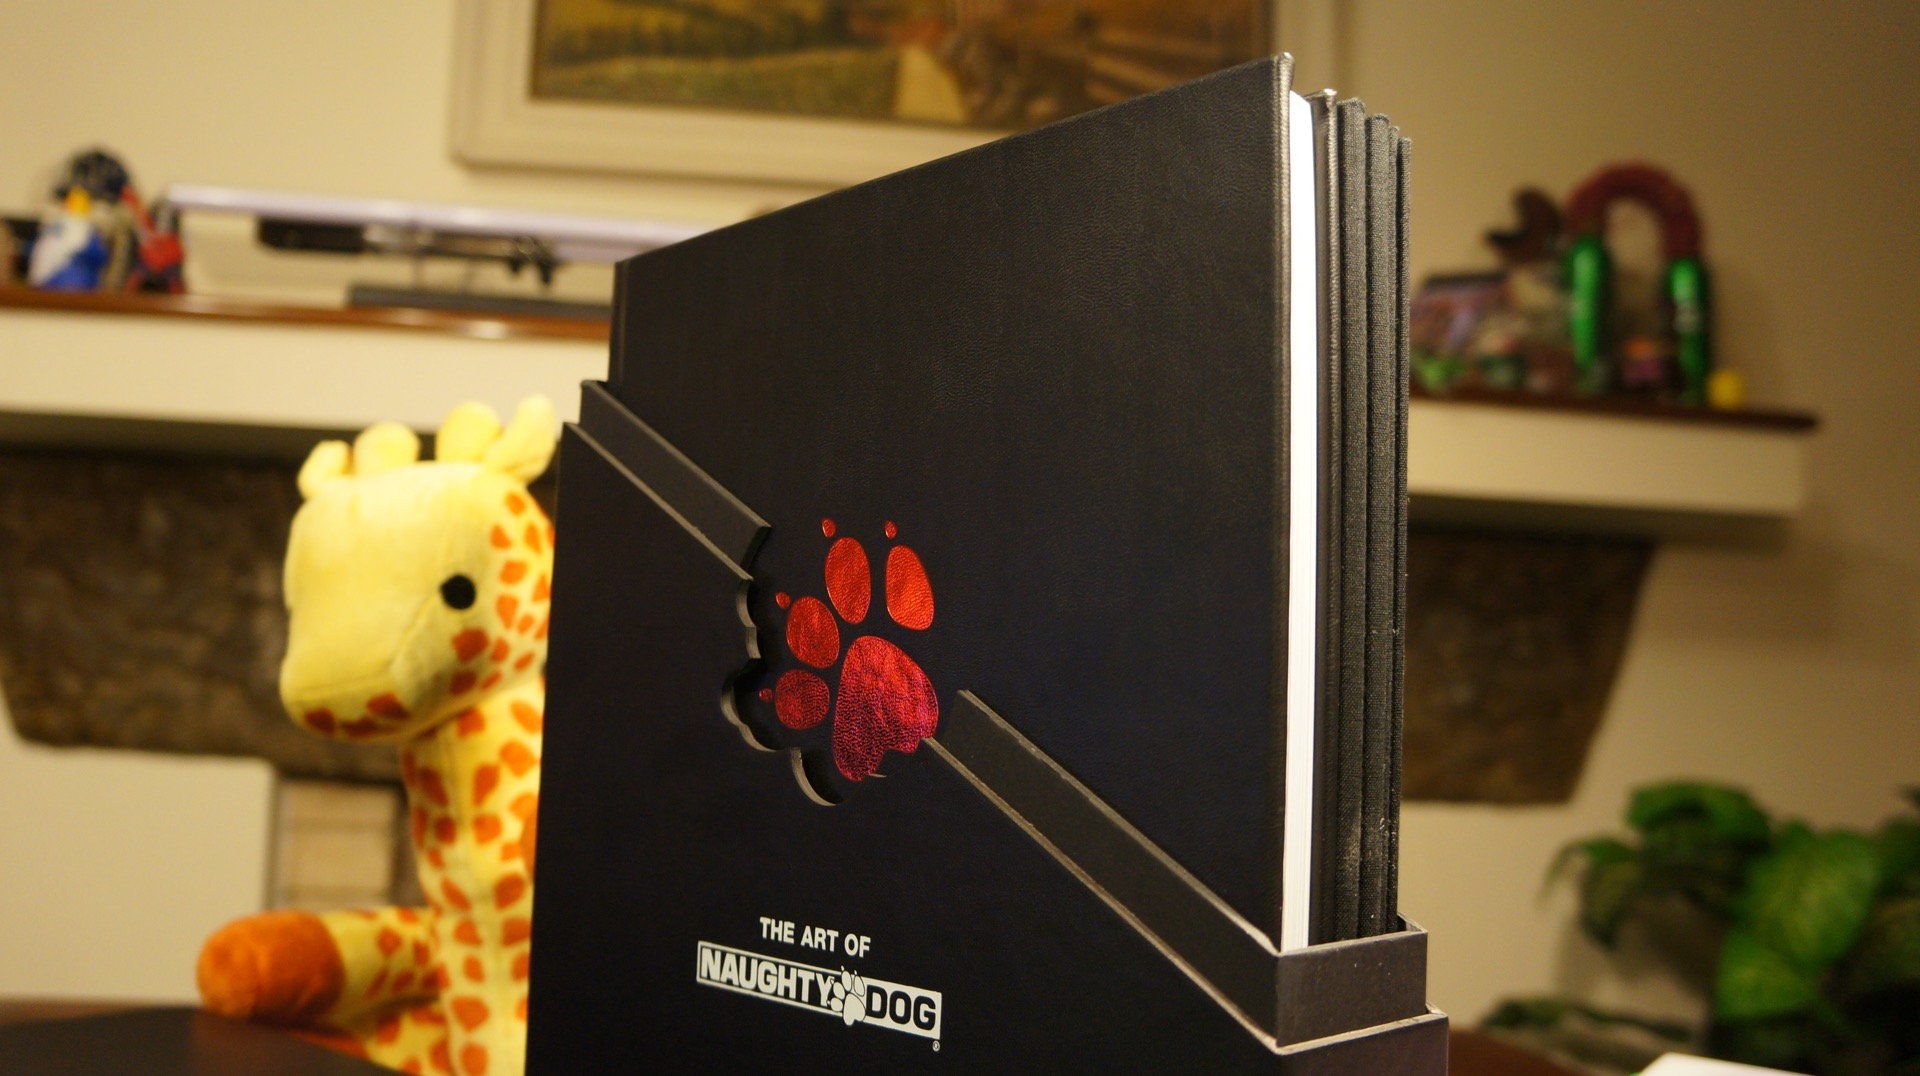 Crash Libro Naughty Dog 30 Años2 Tec